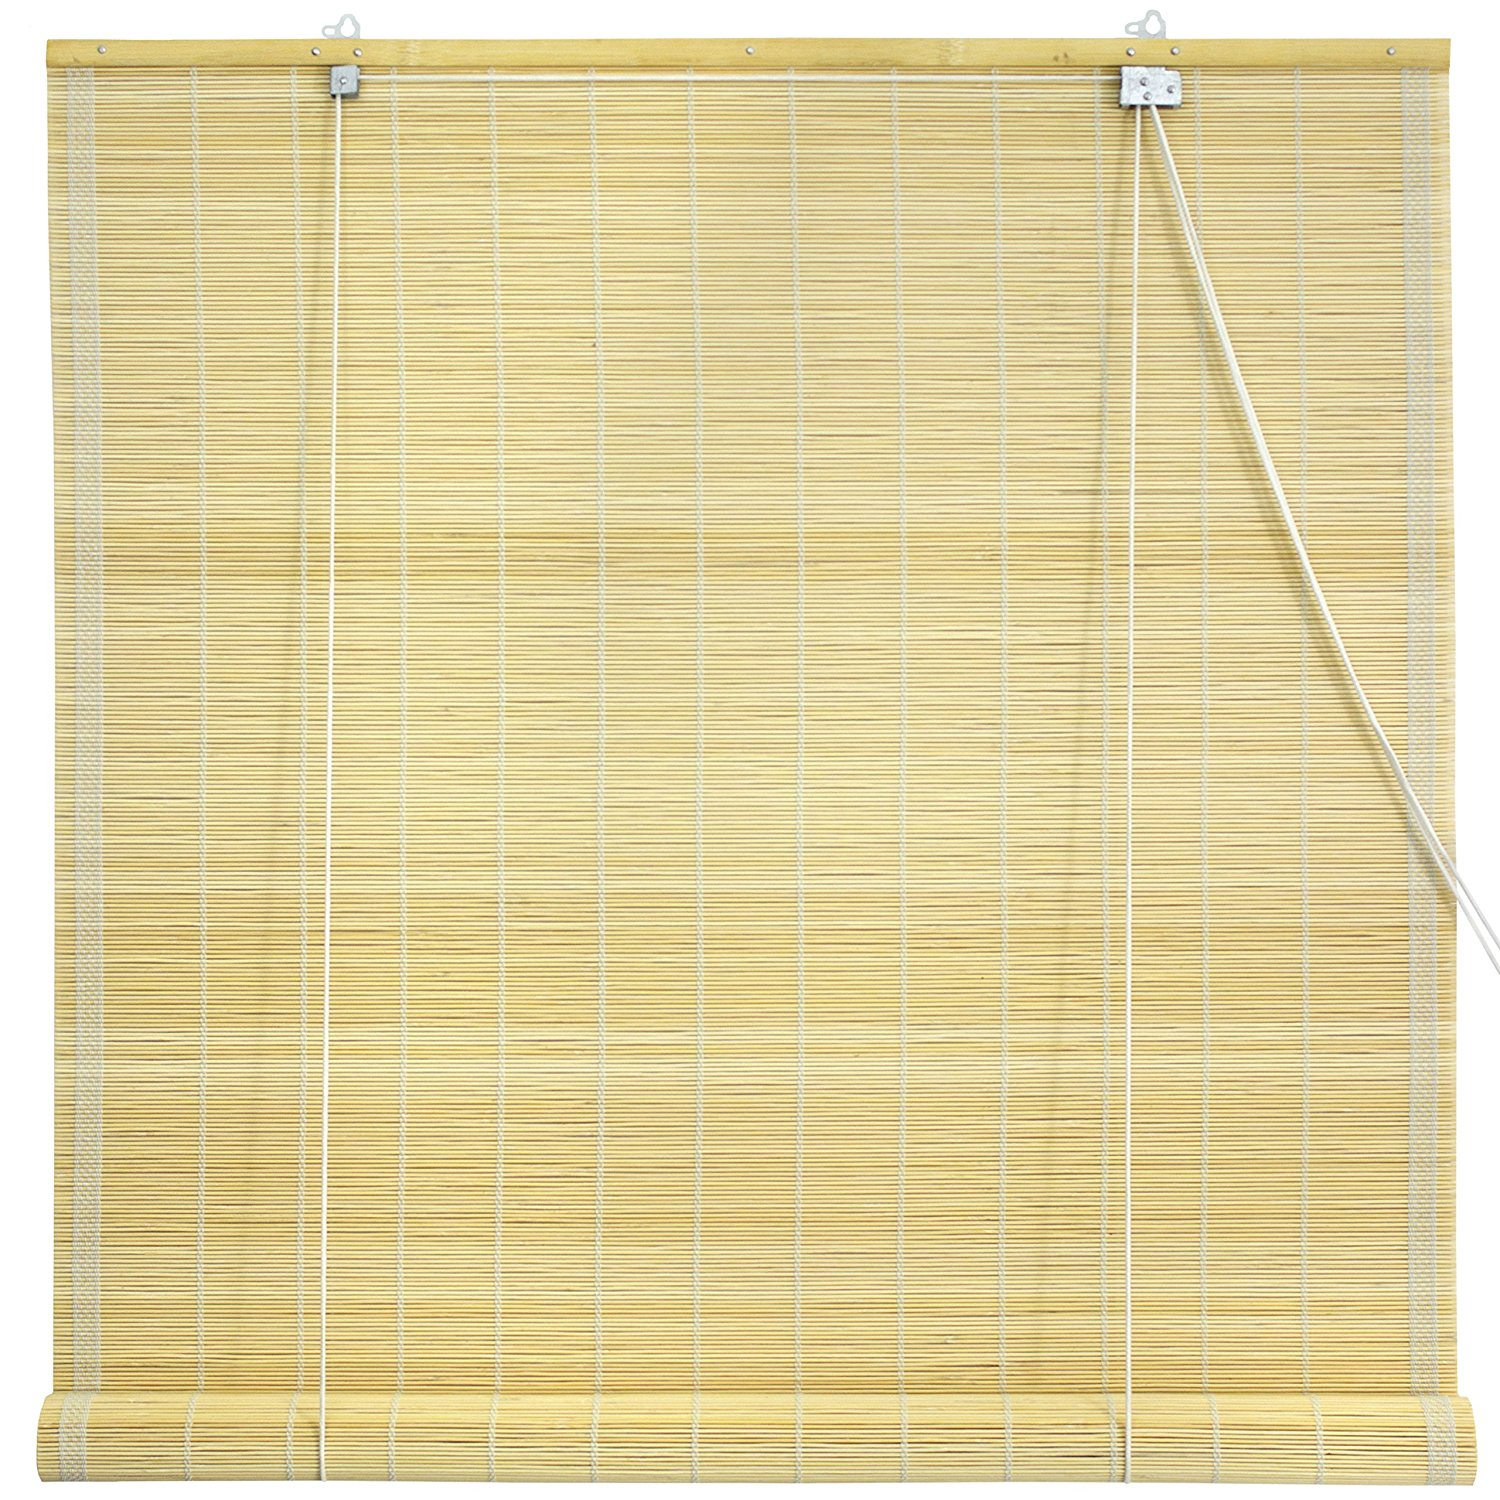 Curtains at Ikea | Vinyl Blinds | Matchstick Blinds Ikea